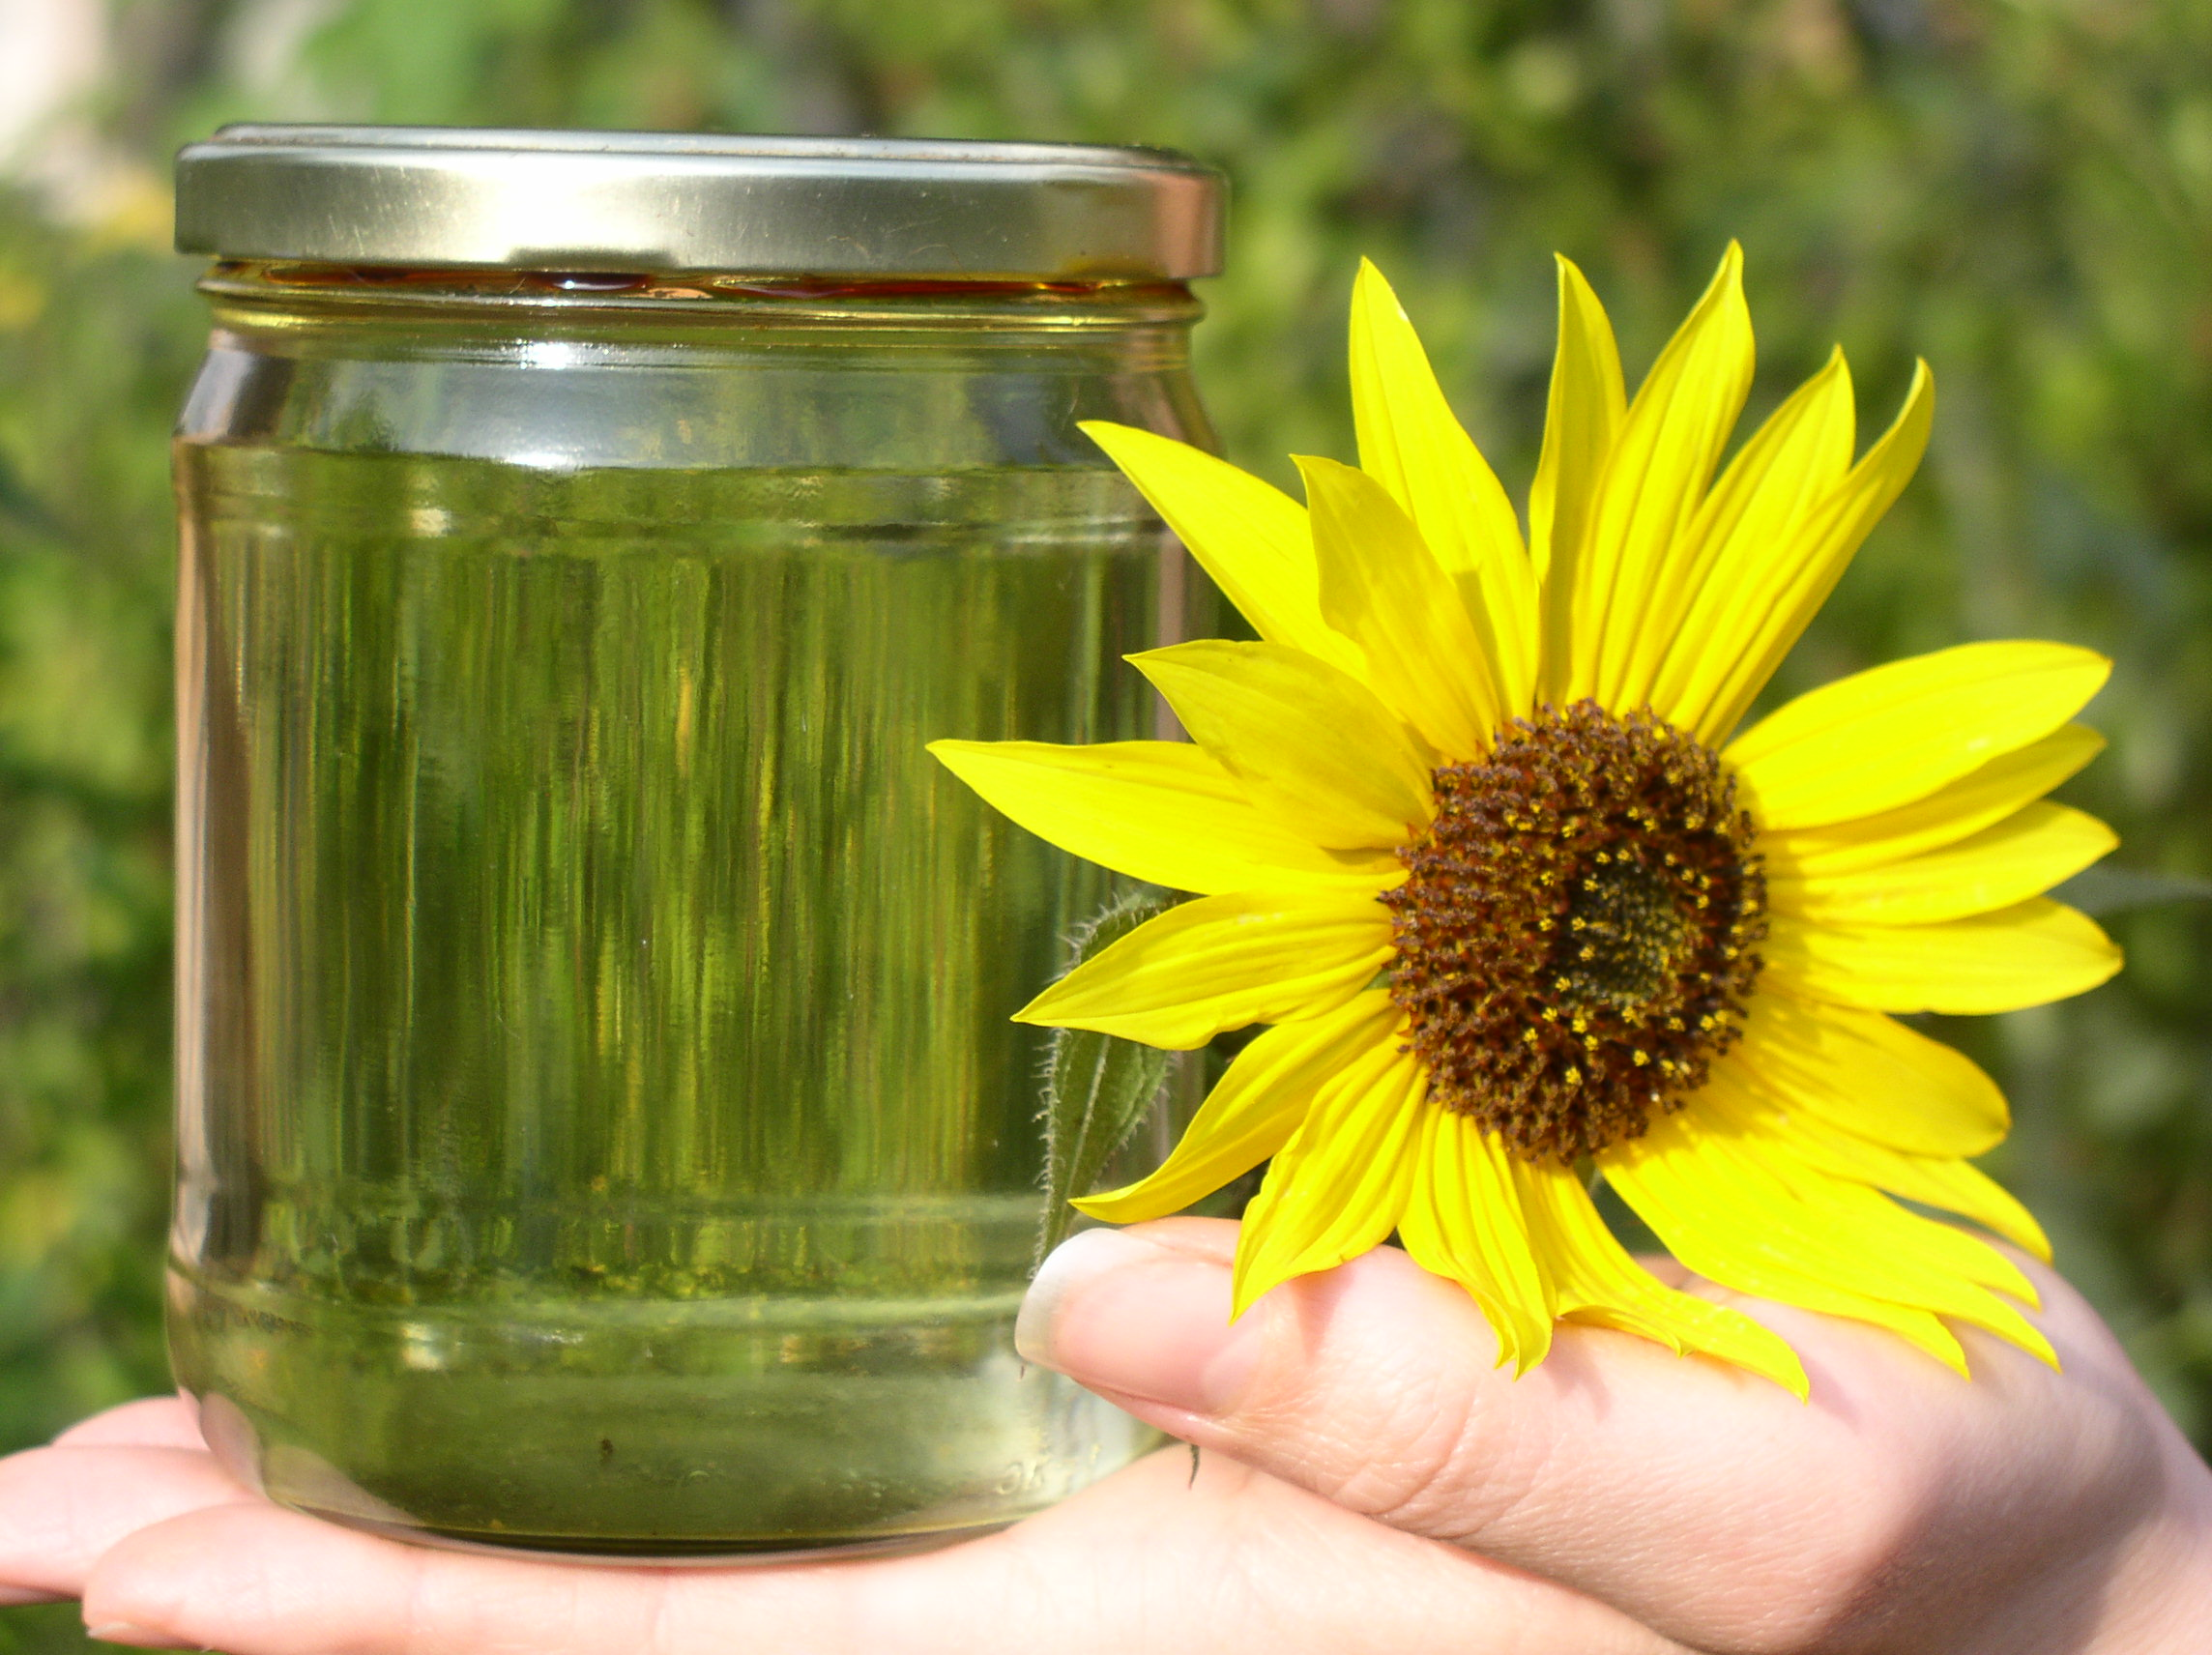 biodiesel-with-sunflowers